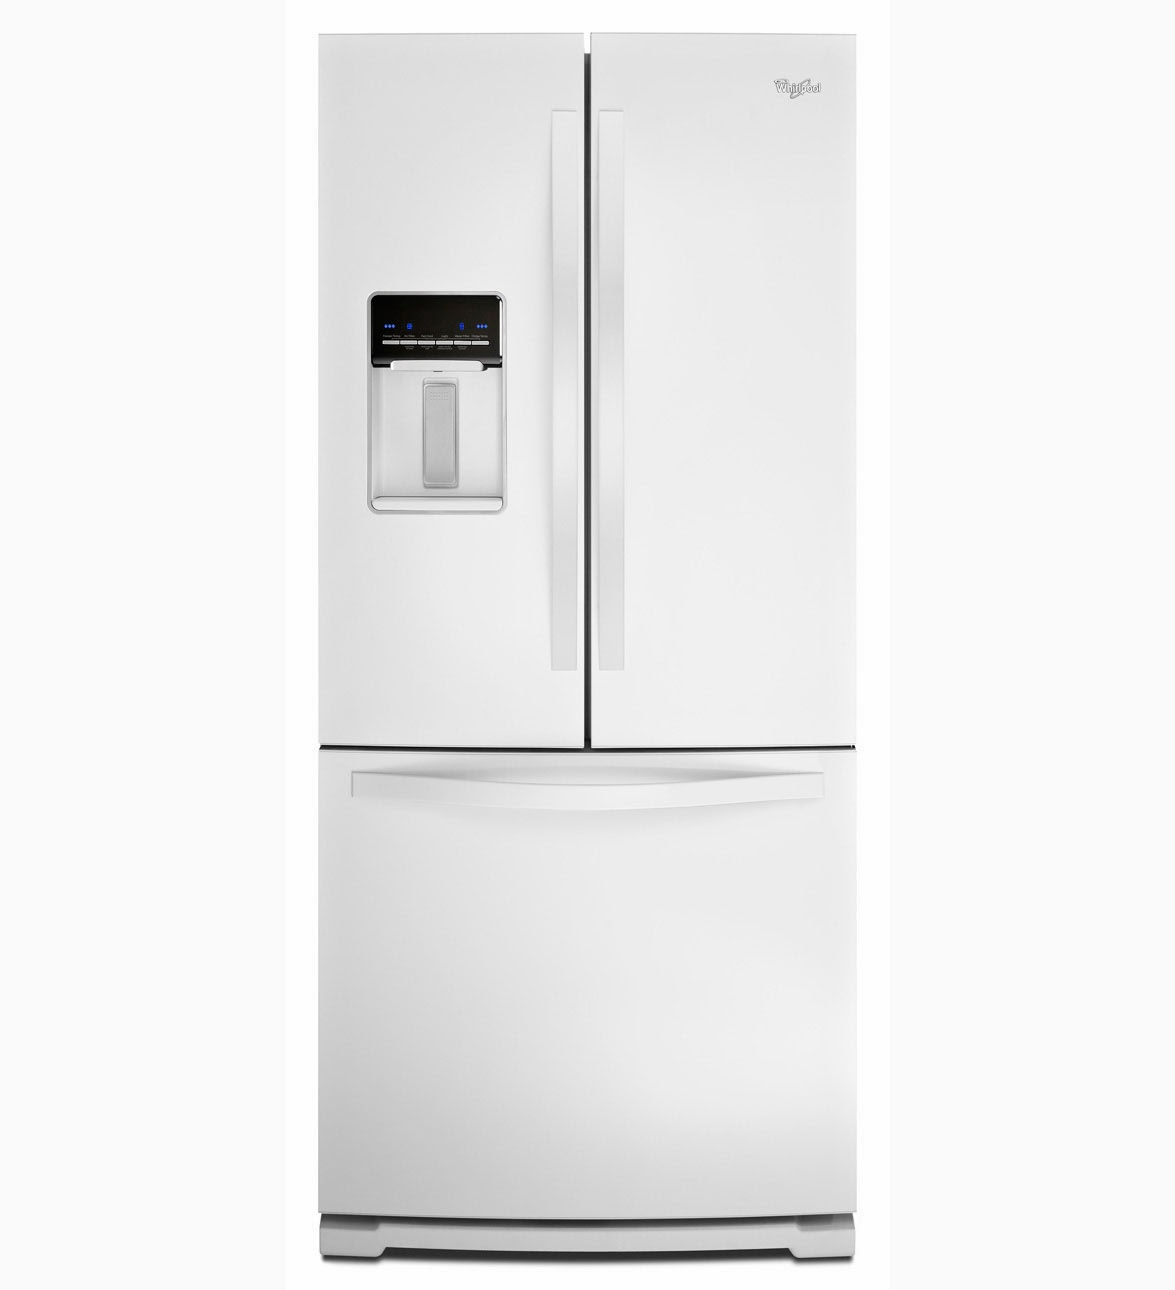 whirlpool refrigerator brand whirlpool wrf560seyw white. Black Bedroom Furniture Sets. Home Design Ideas